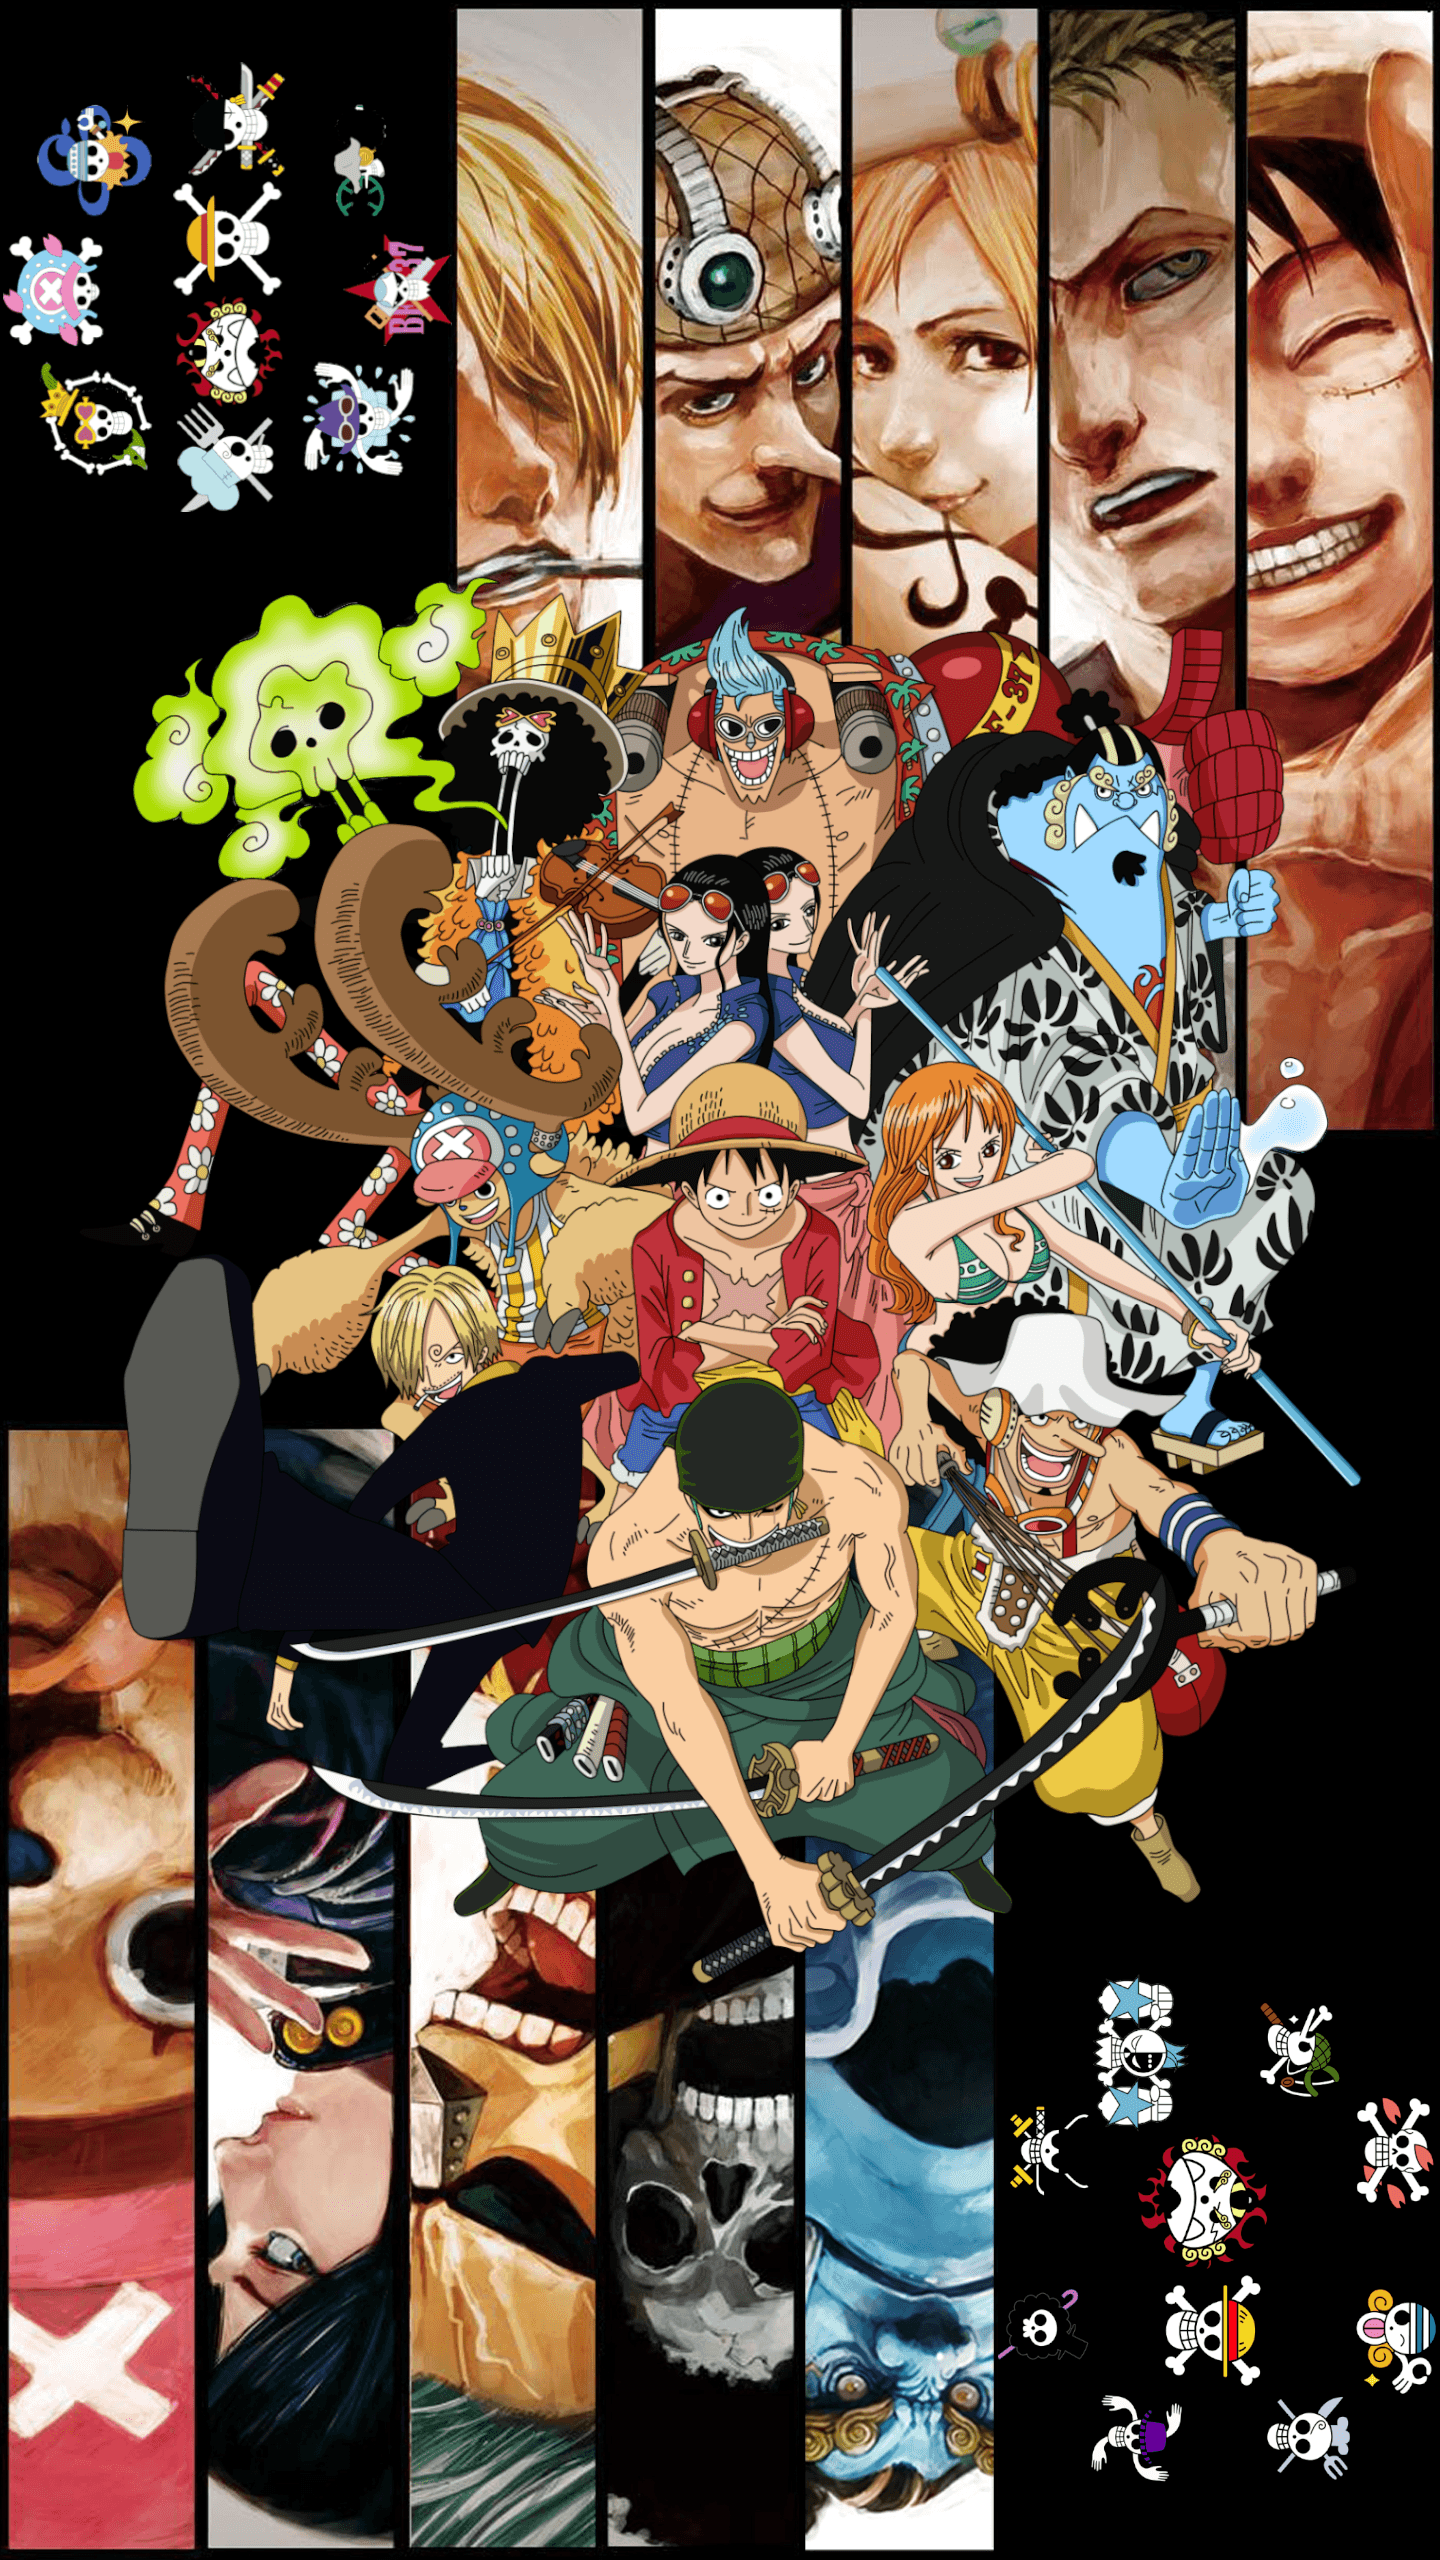 Straw Hat Pirates Wallpapers Top Free Straw Hat Pirates Backgrounds Wallpaperaccess